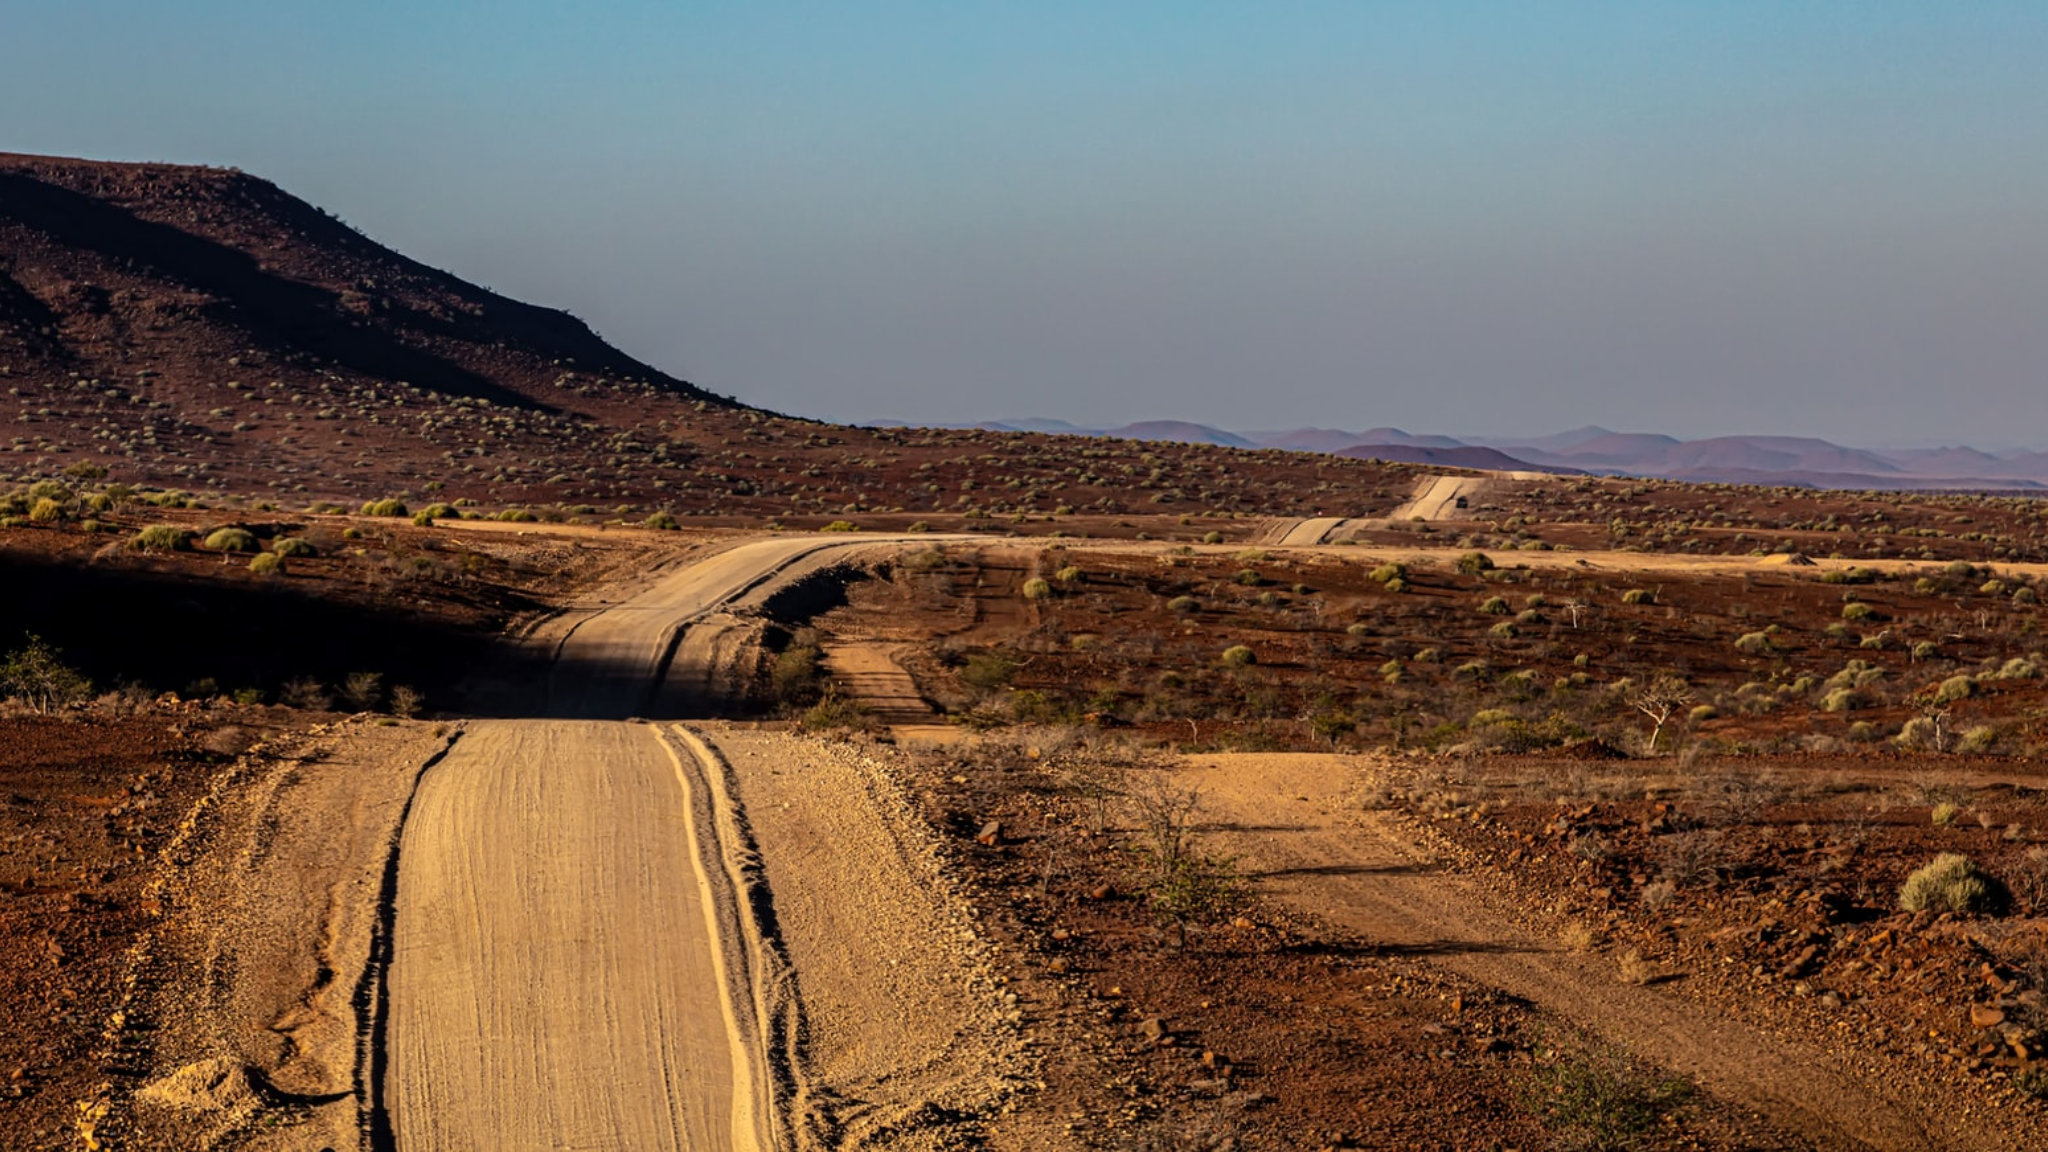 strada sterrata pista namibia featured